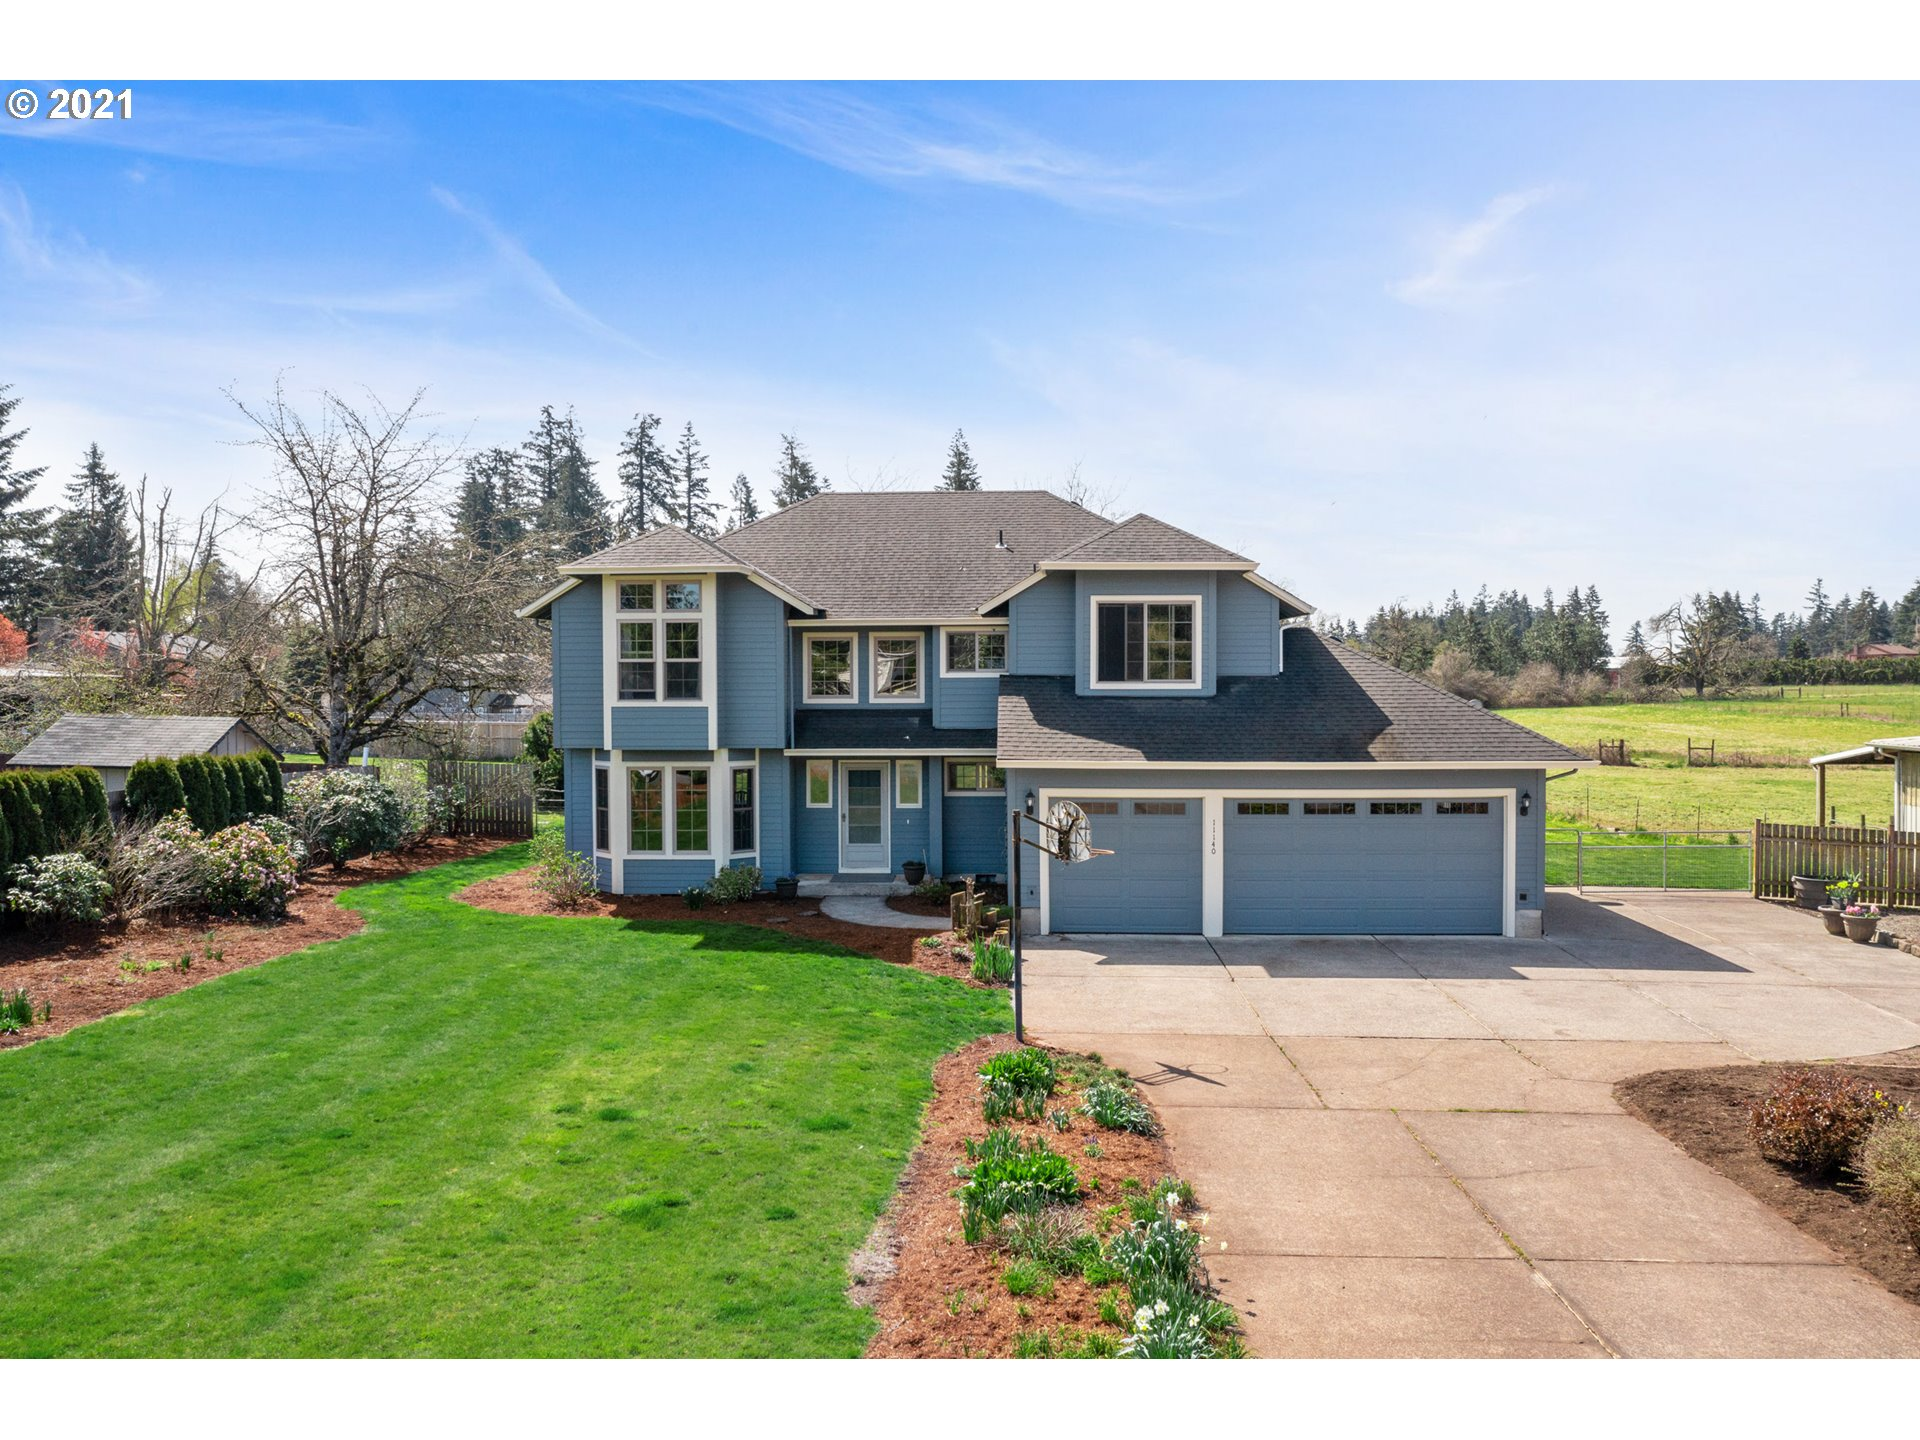 11140 S FOREST RIDGE RD, Oregon City OR 97045